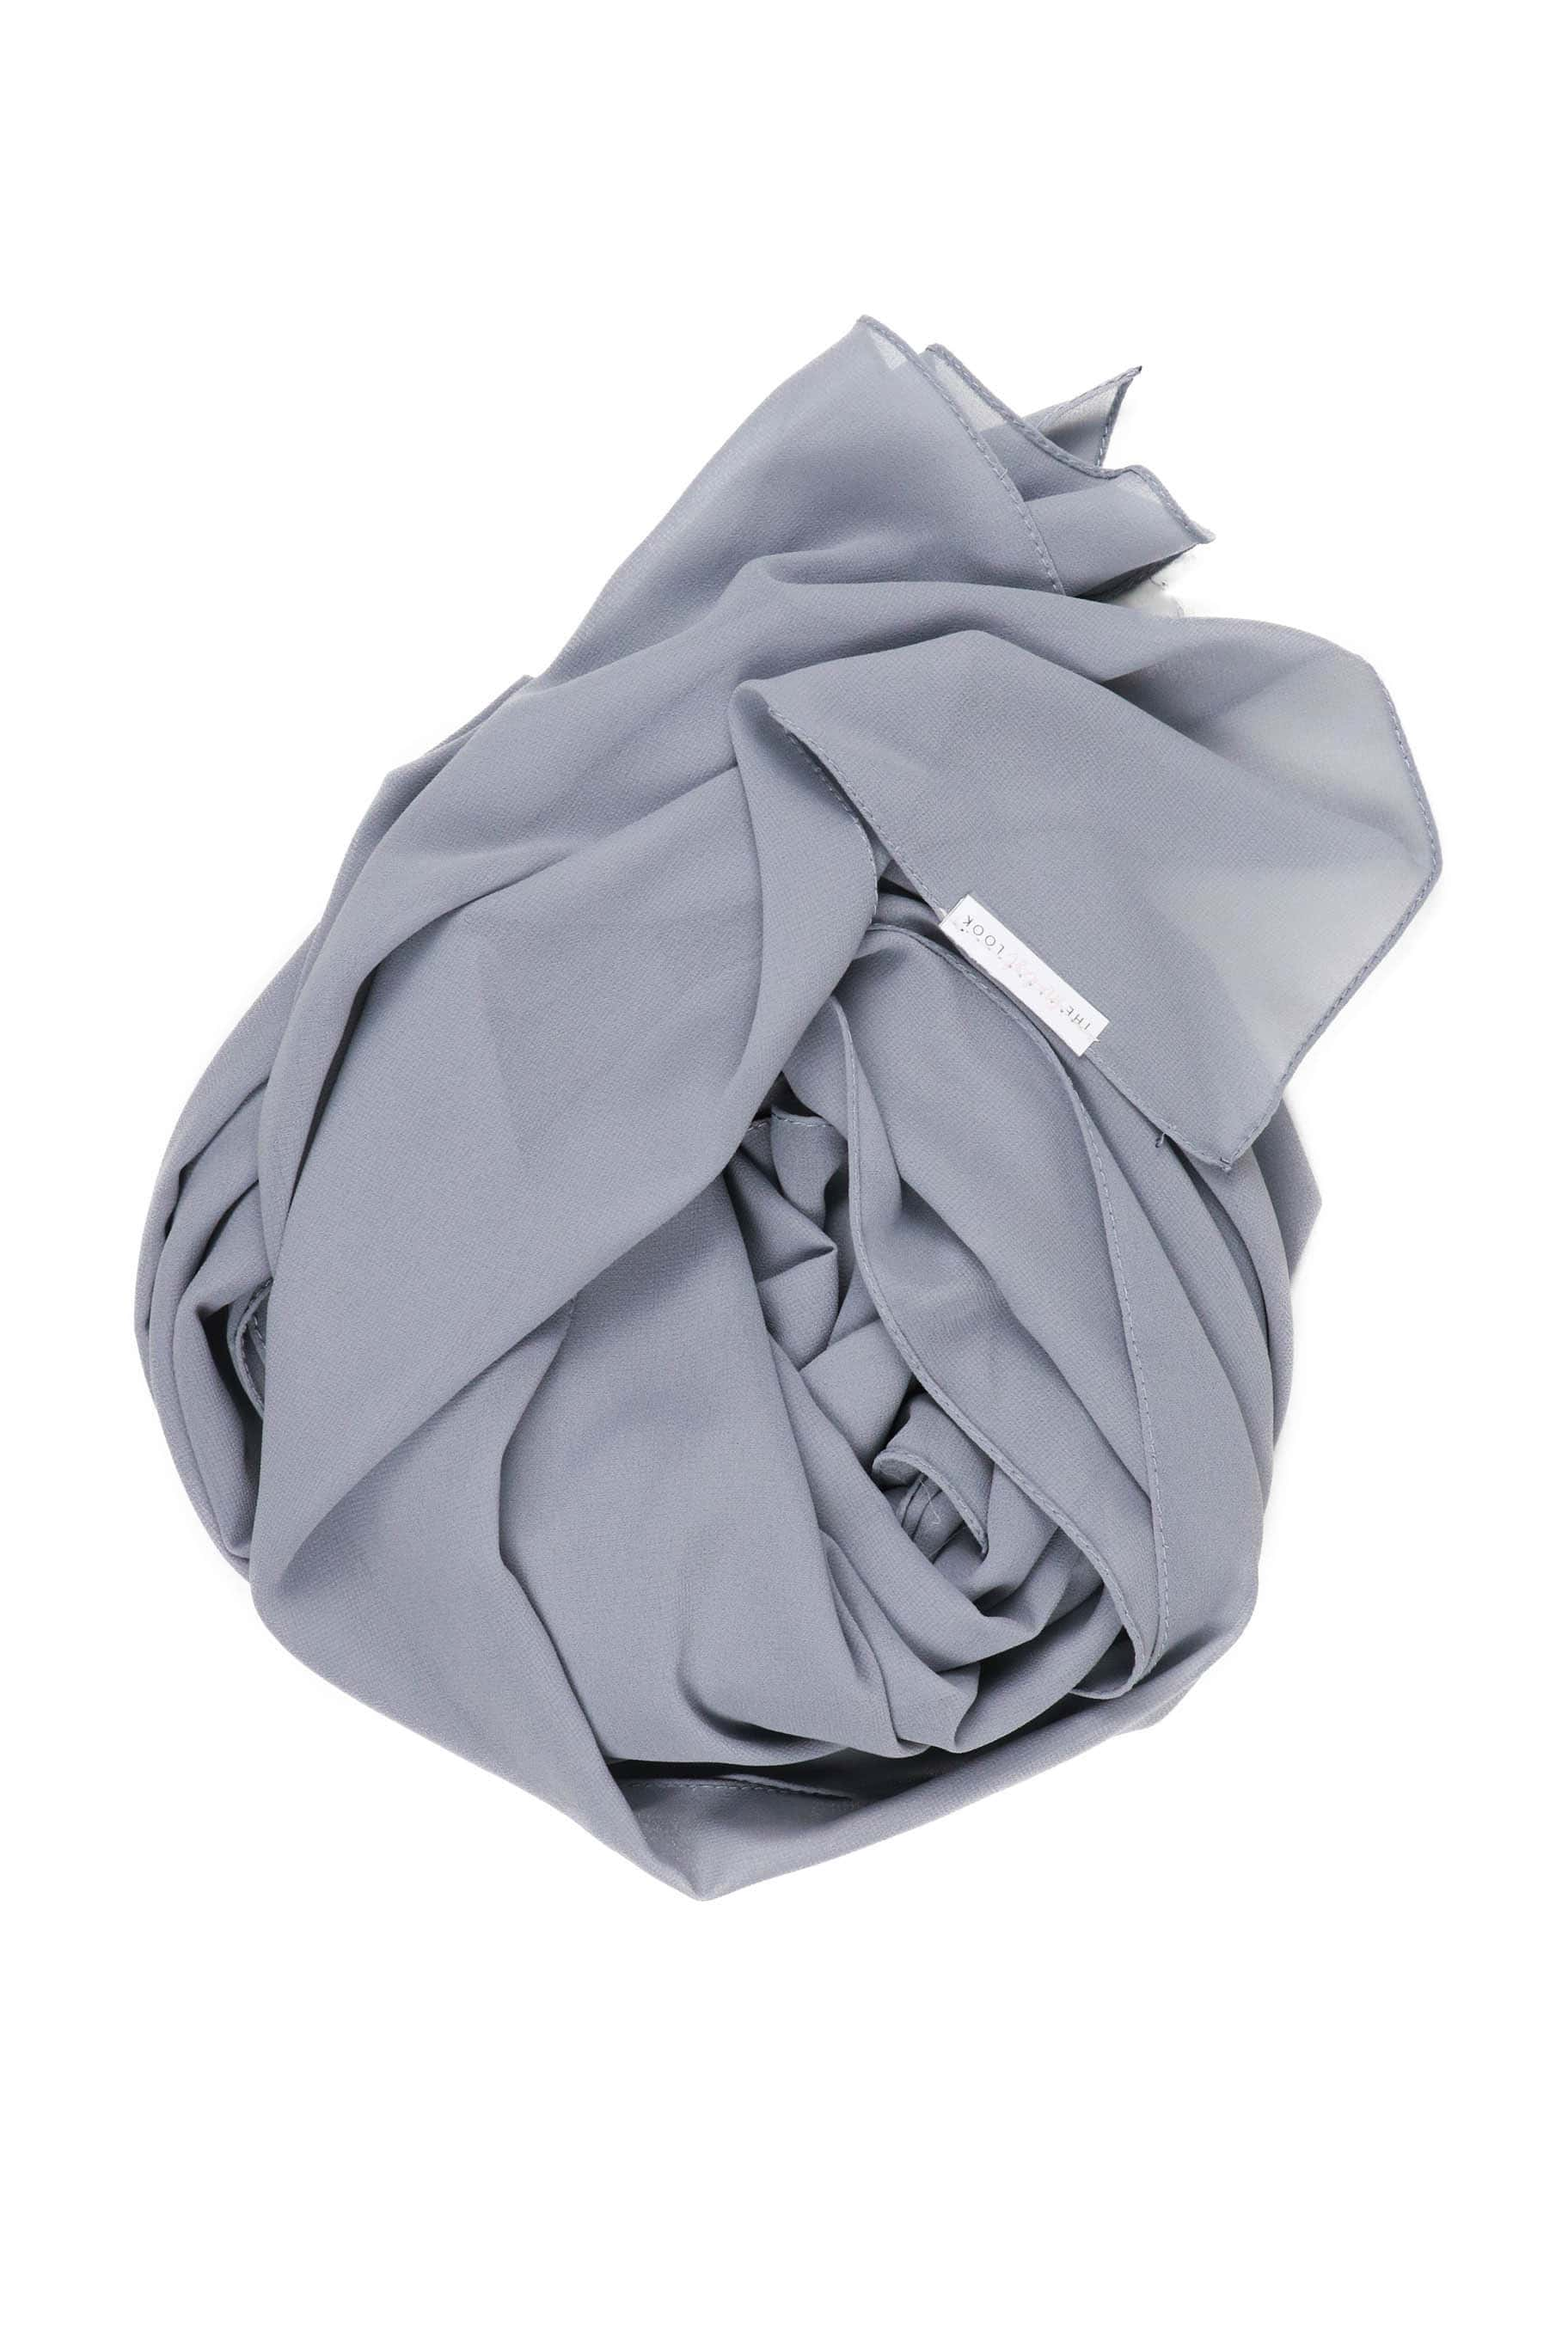 Cloudy Grey Chiffon Hijab - Chiffon Hijab - The Modest Look